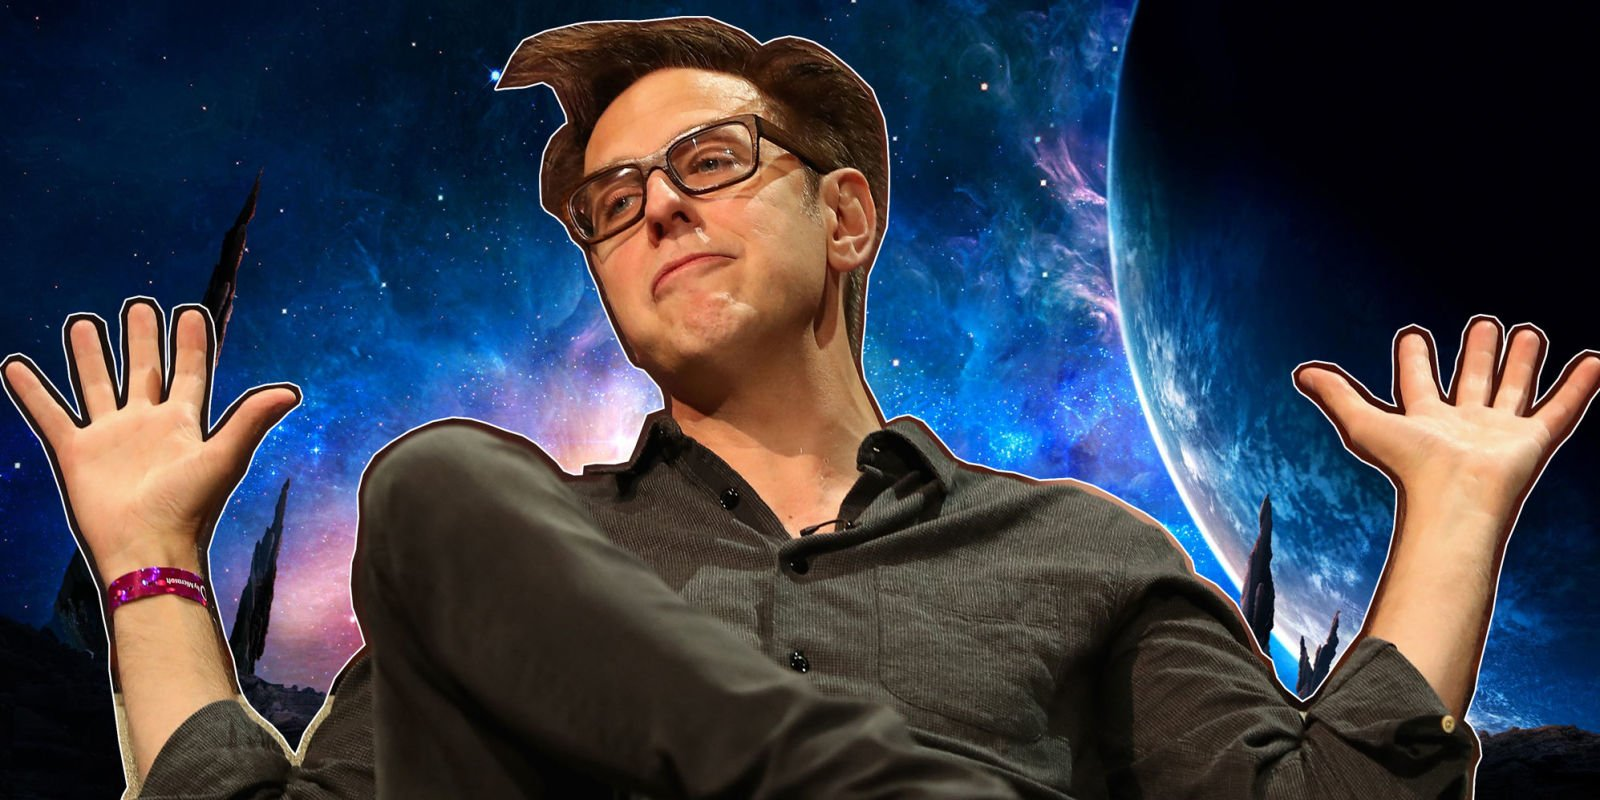 """Guardians of the Galaxy's James Gunn was """"given the opportunity"""" to direct a DC movie"""